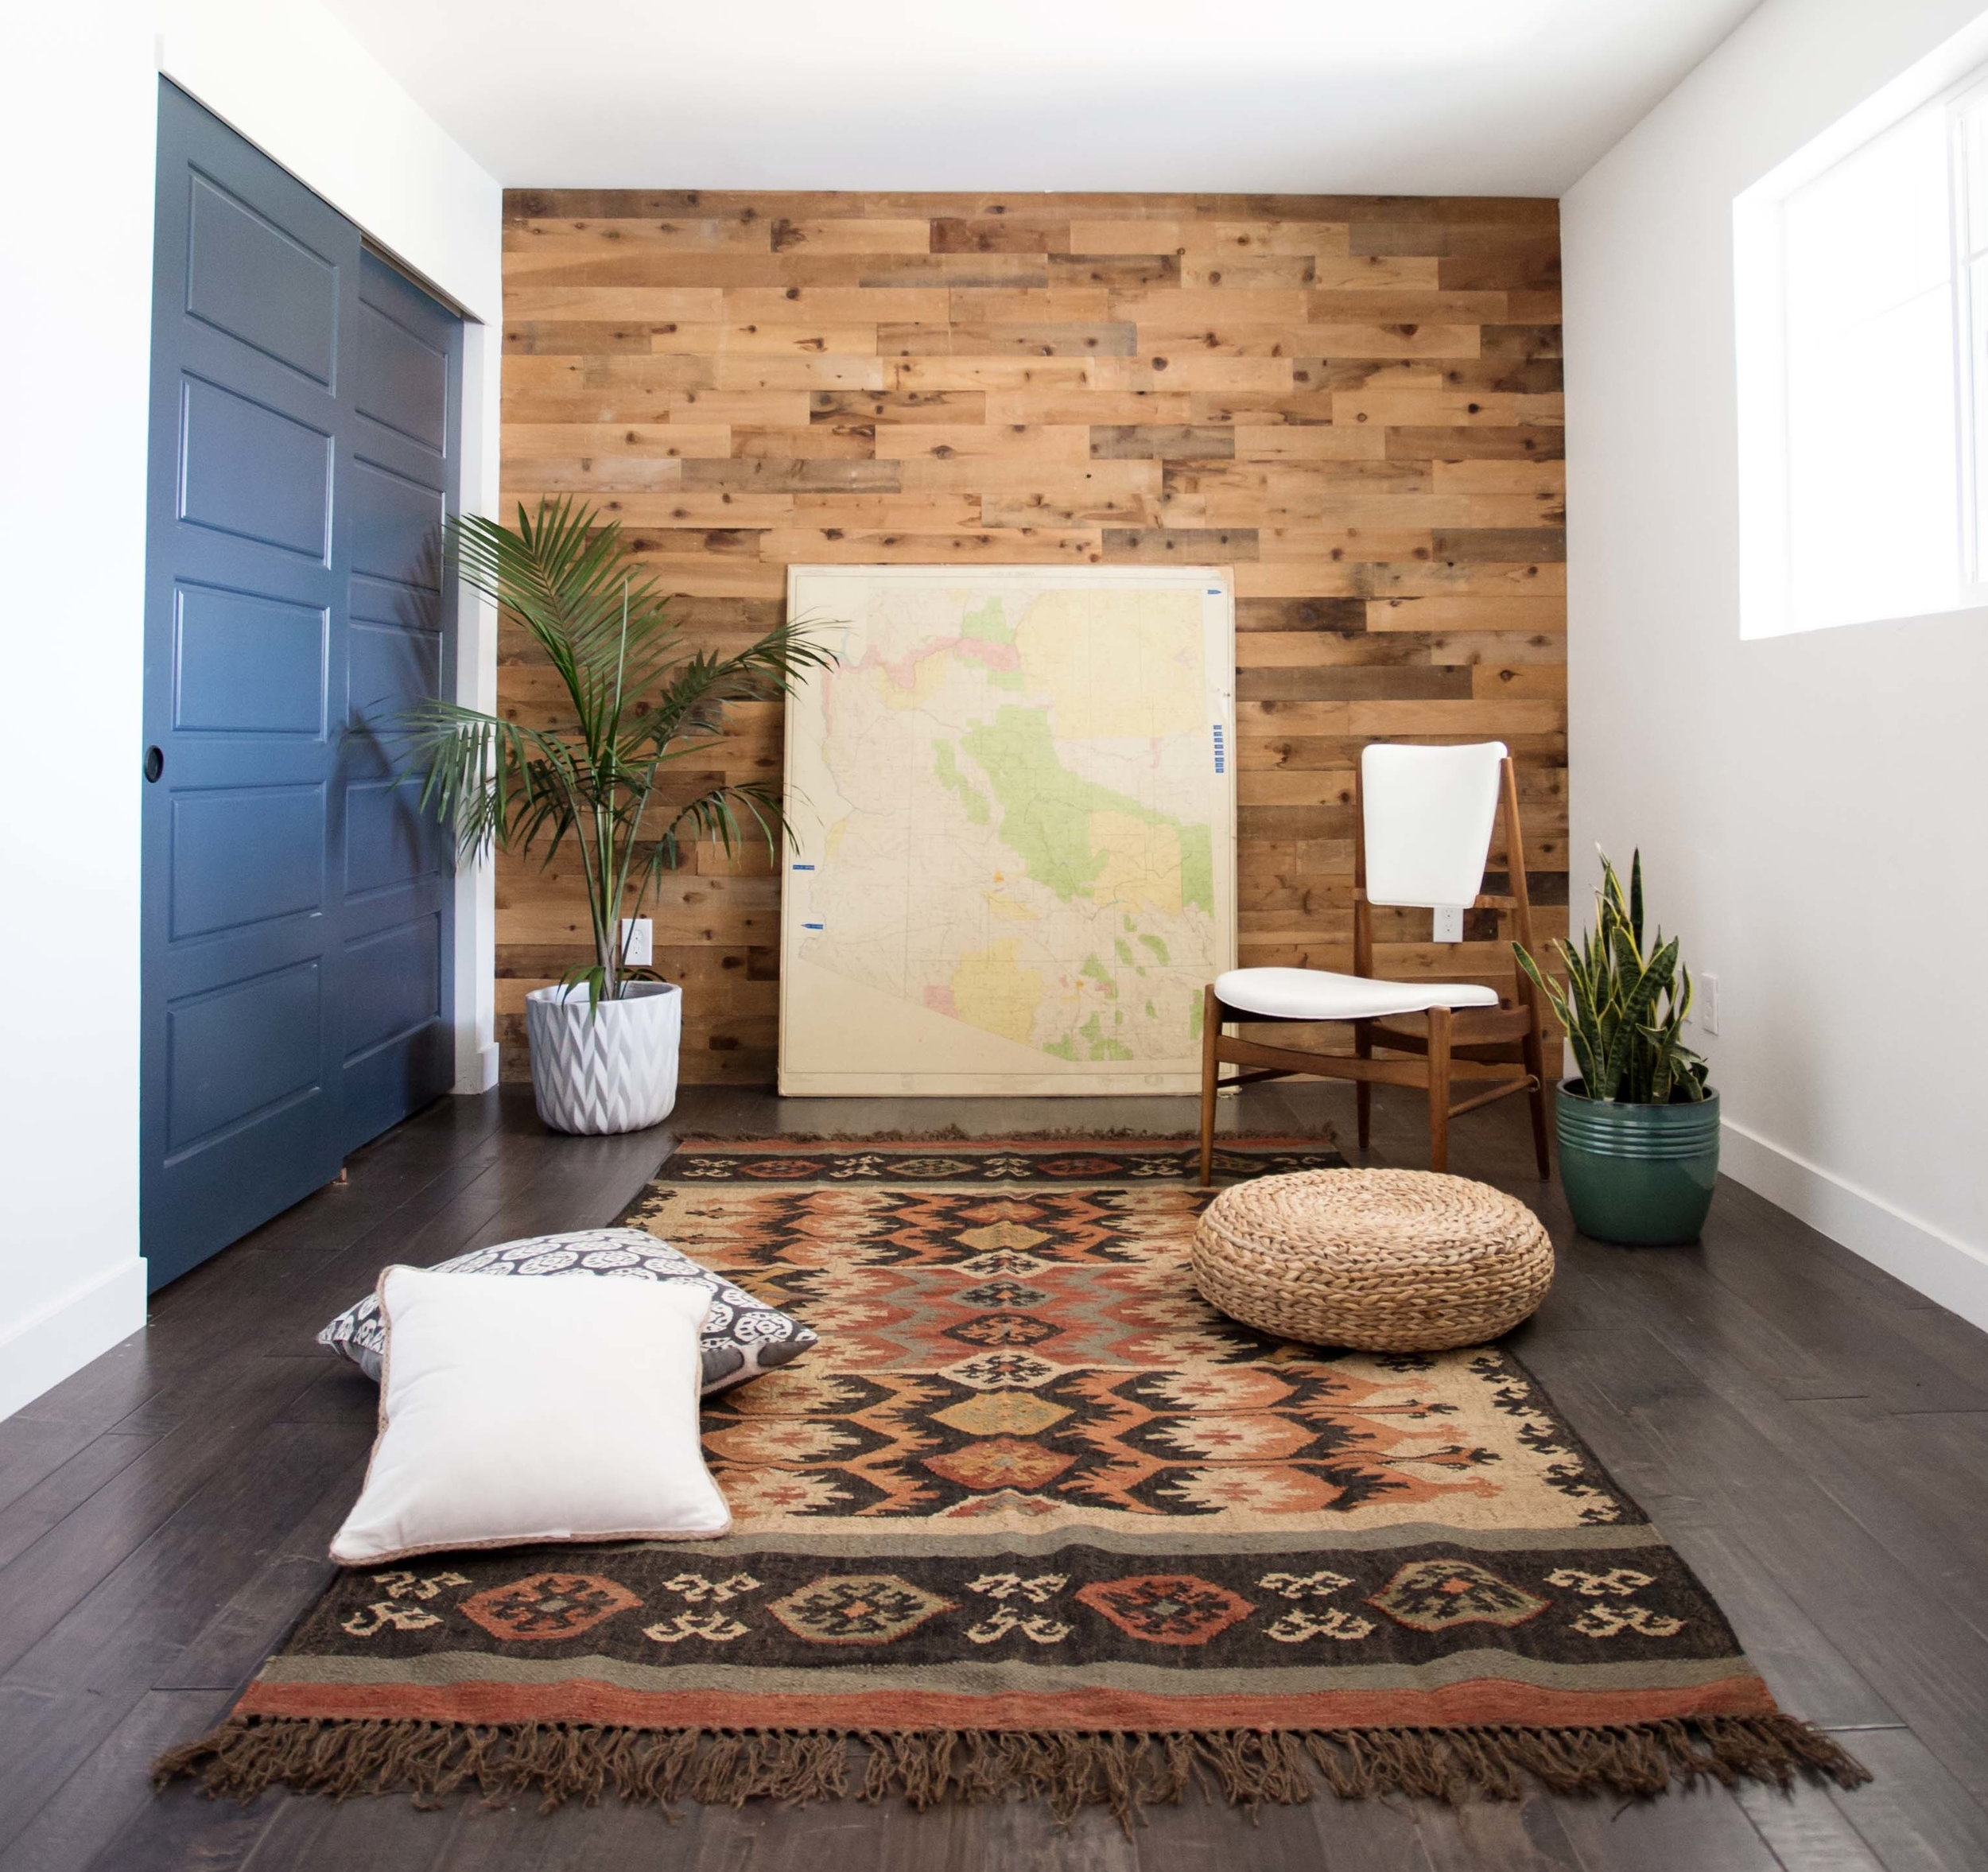 Clarendon Study with cedar wood barnwood accent wall